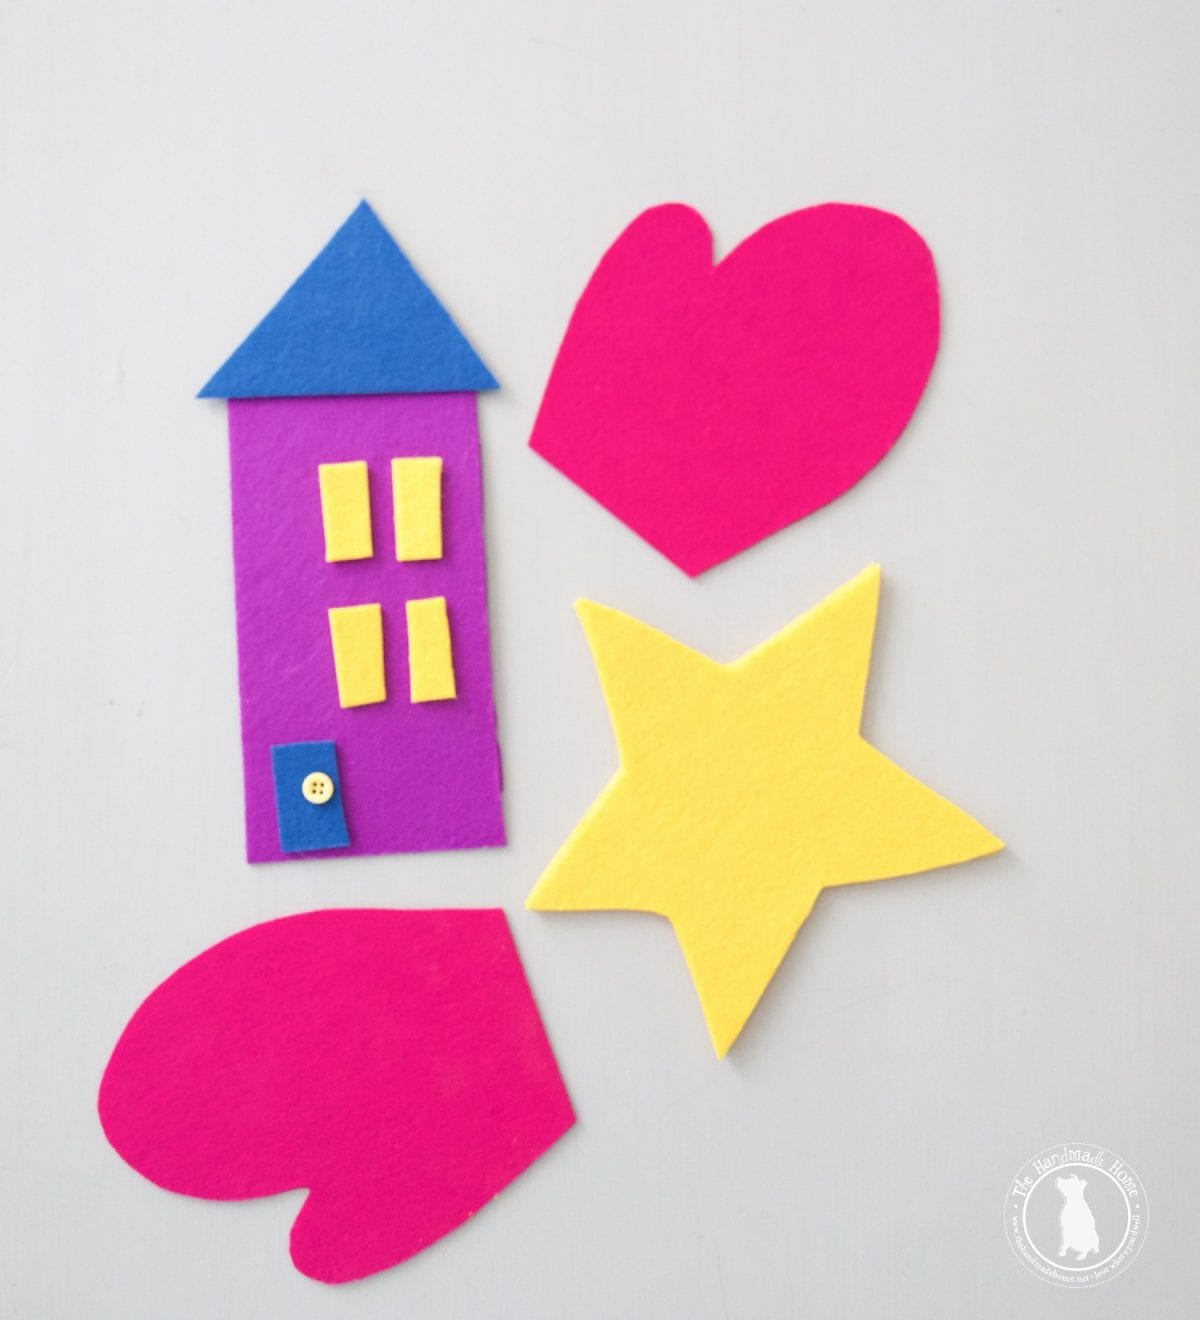 cut_out_shapes_childrens_ornaments